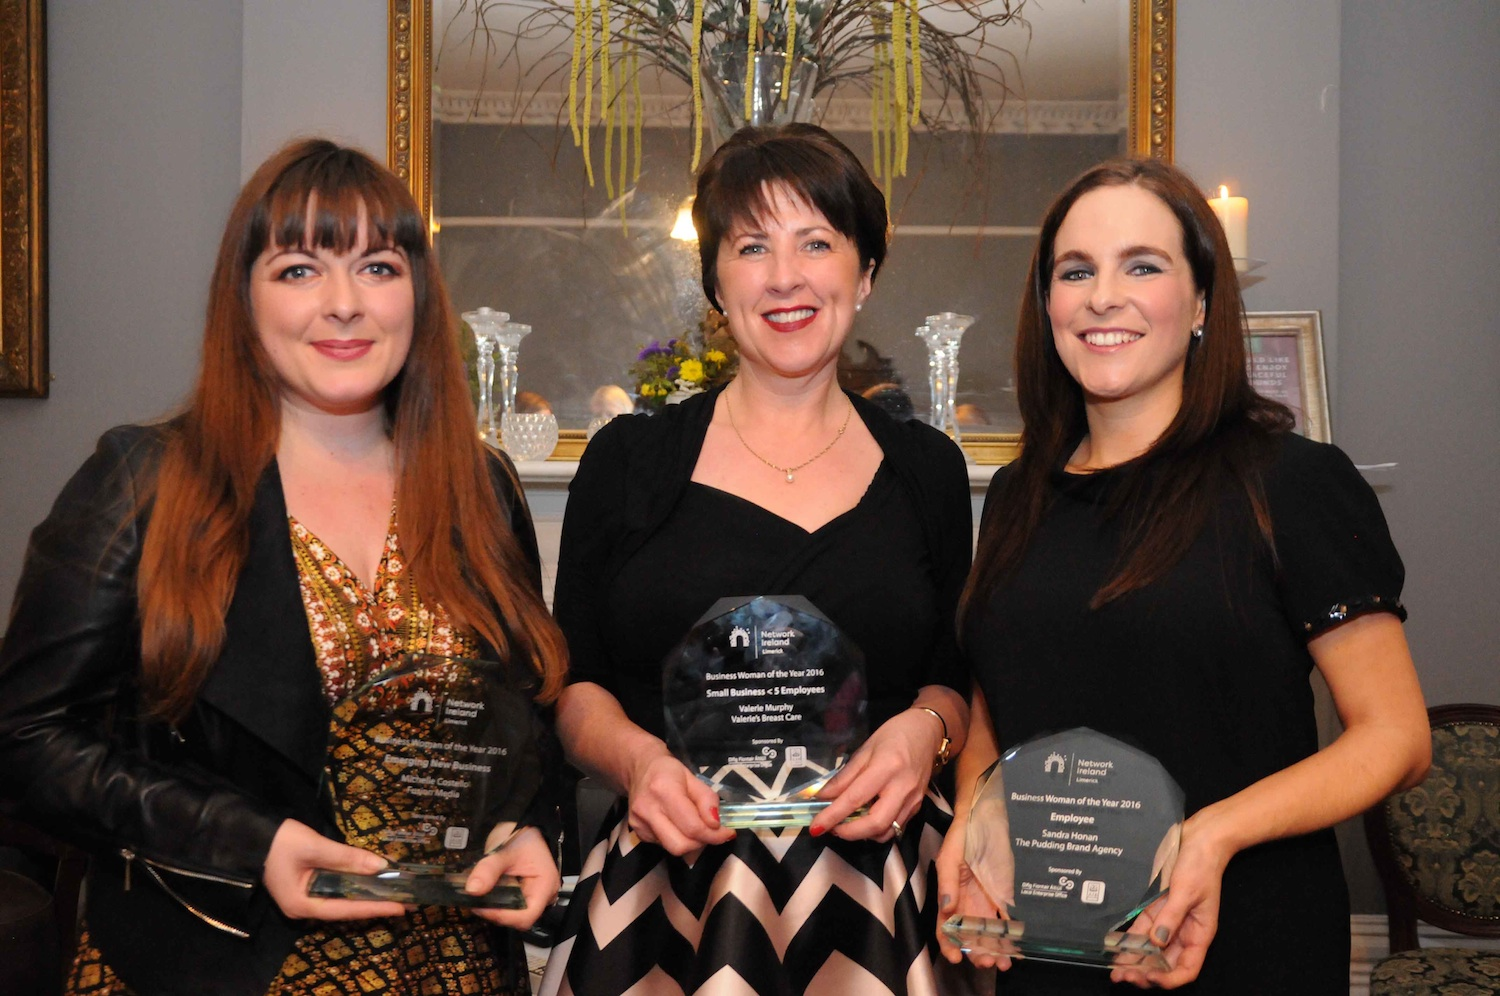 Limerick Business Woman of the Year Awards 2016